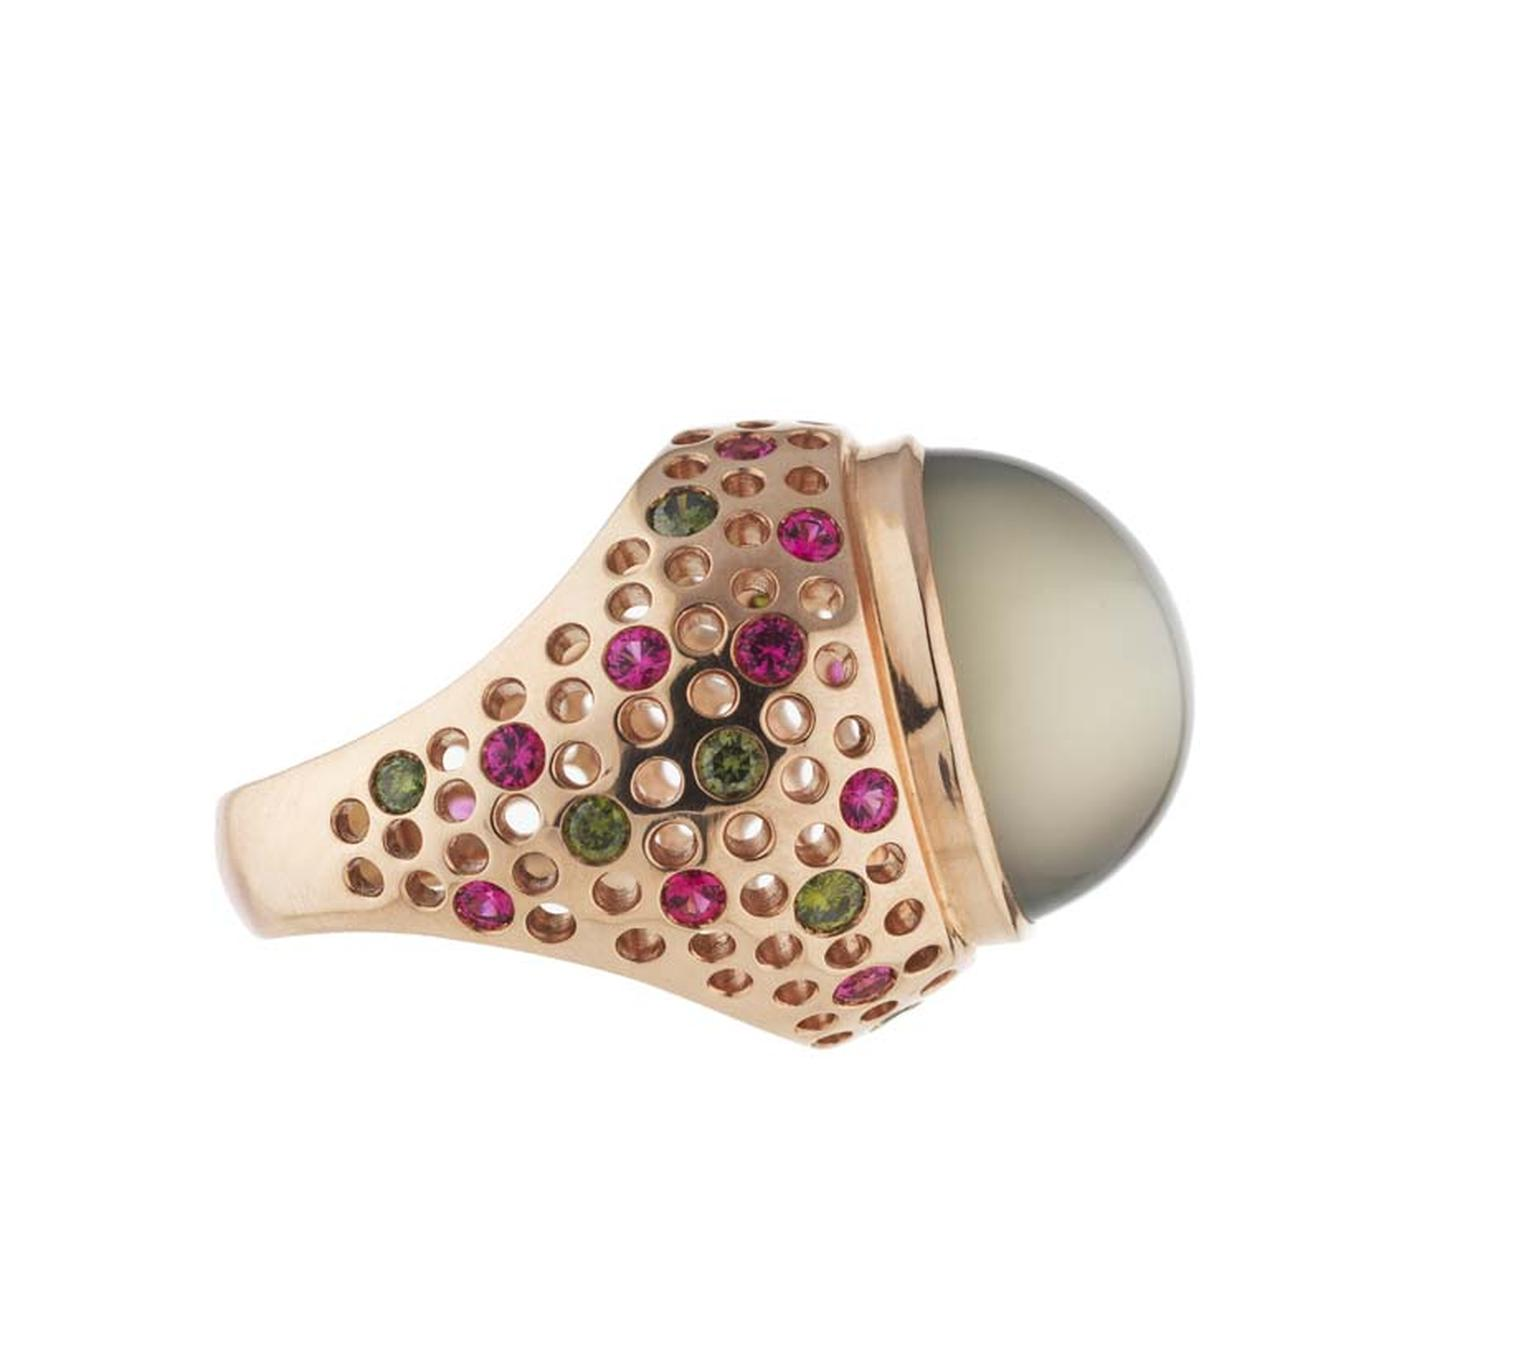 Holts Vivienne moonstone ring featuring a rose gold band studded with natural pink spinels and green diamonds.